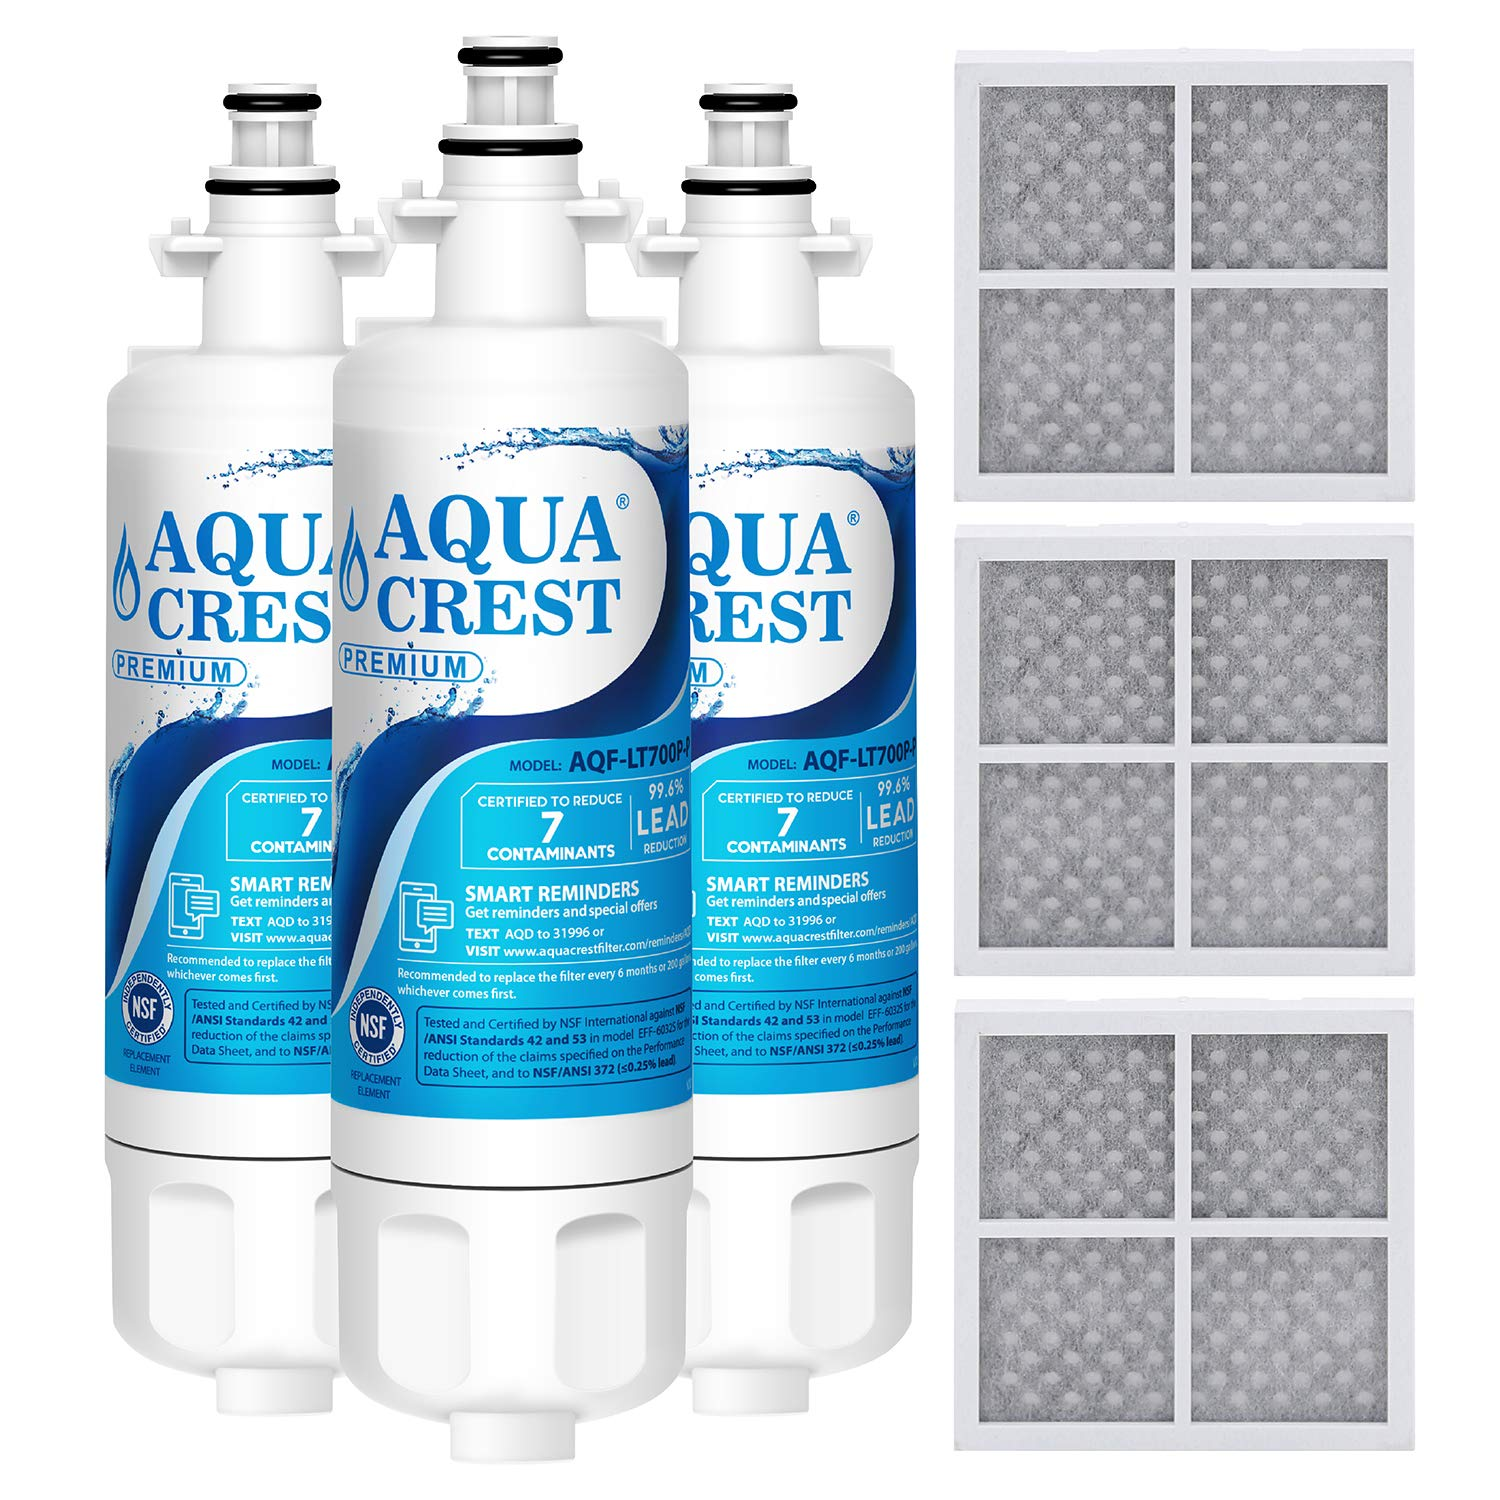 AQUACREST ADQ36006101 NSF 53&42 Refrigerator Water Filter and Air Filter, Compatible with LG LT700P, Kenmore 9690, 46-9690, ADQ36006102 and LT120F (Pack of 3)